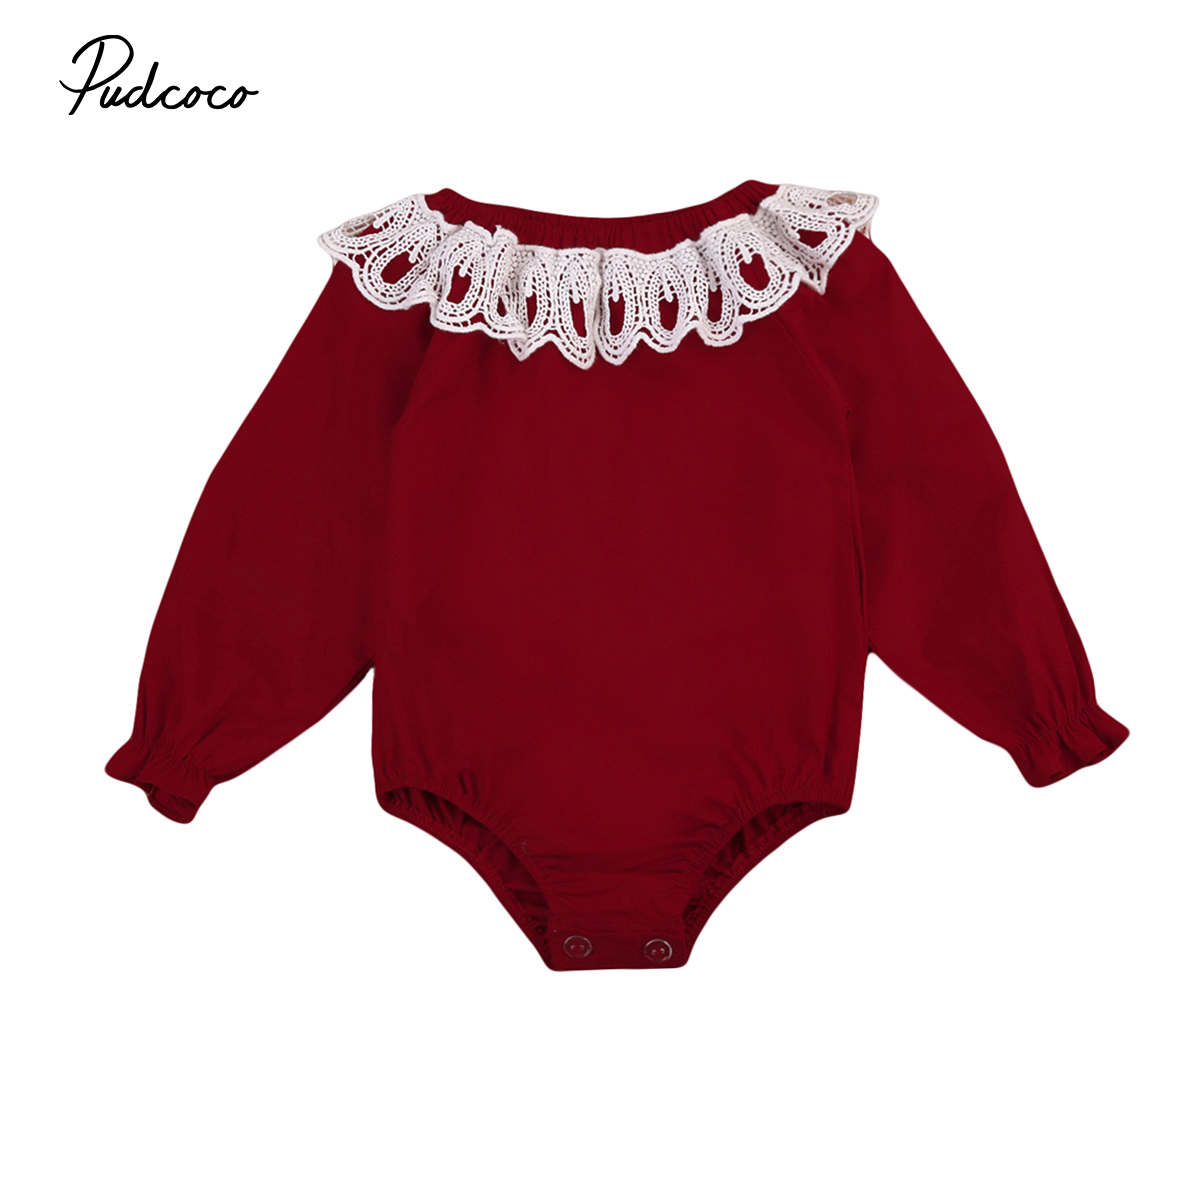 Pudcoco Cute Lace One-Pieces Newborn Baby Romper Infant Baby Girl Long Sleeve Rompers Red Jumpsuit Girl Ruffle Clothes Outfit